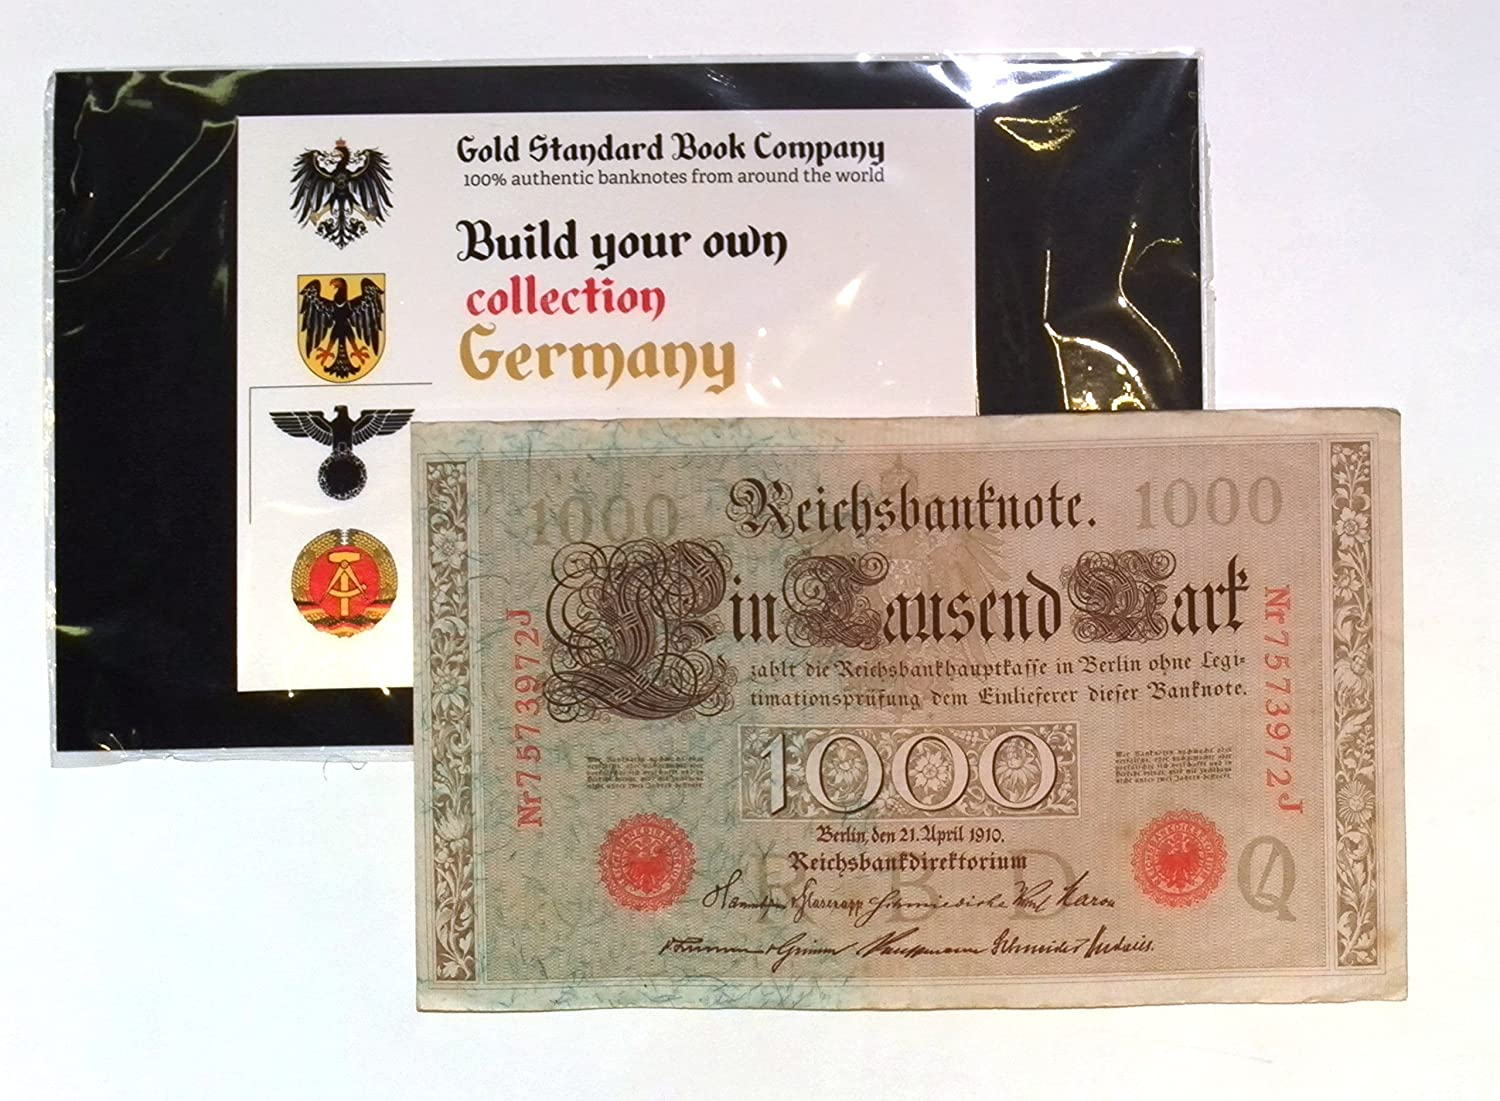 Huge 1910 German Empire Banknote Authentic 1000 Mark Max Ranking integrated 1st place 90% OFF